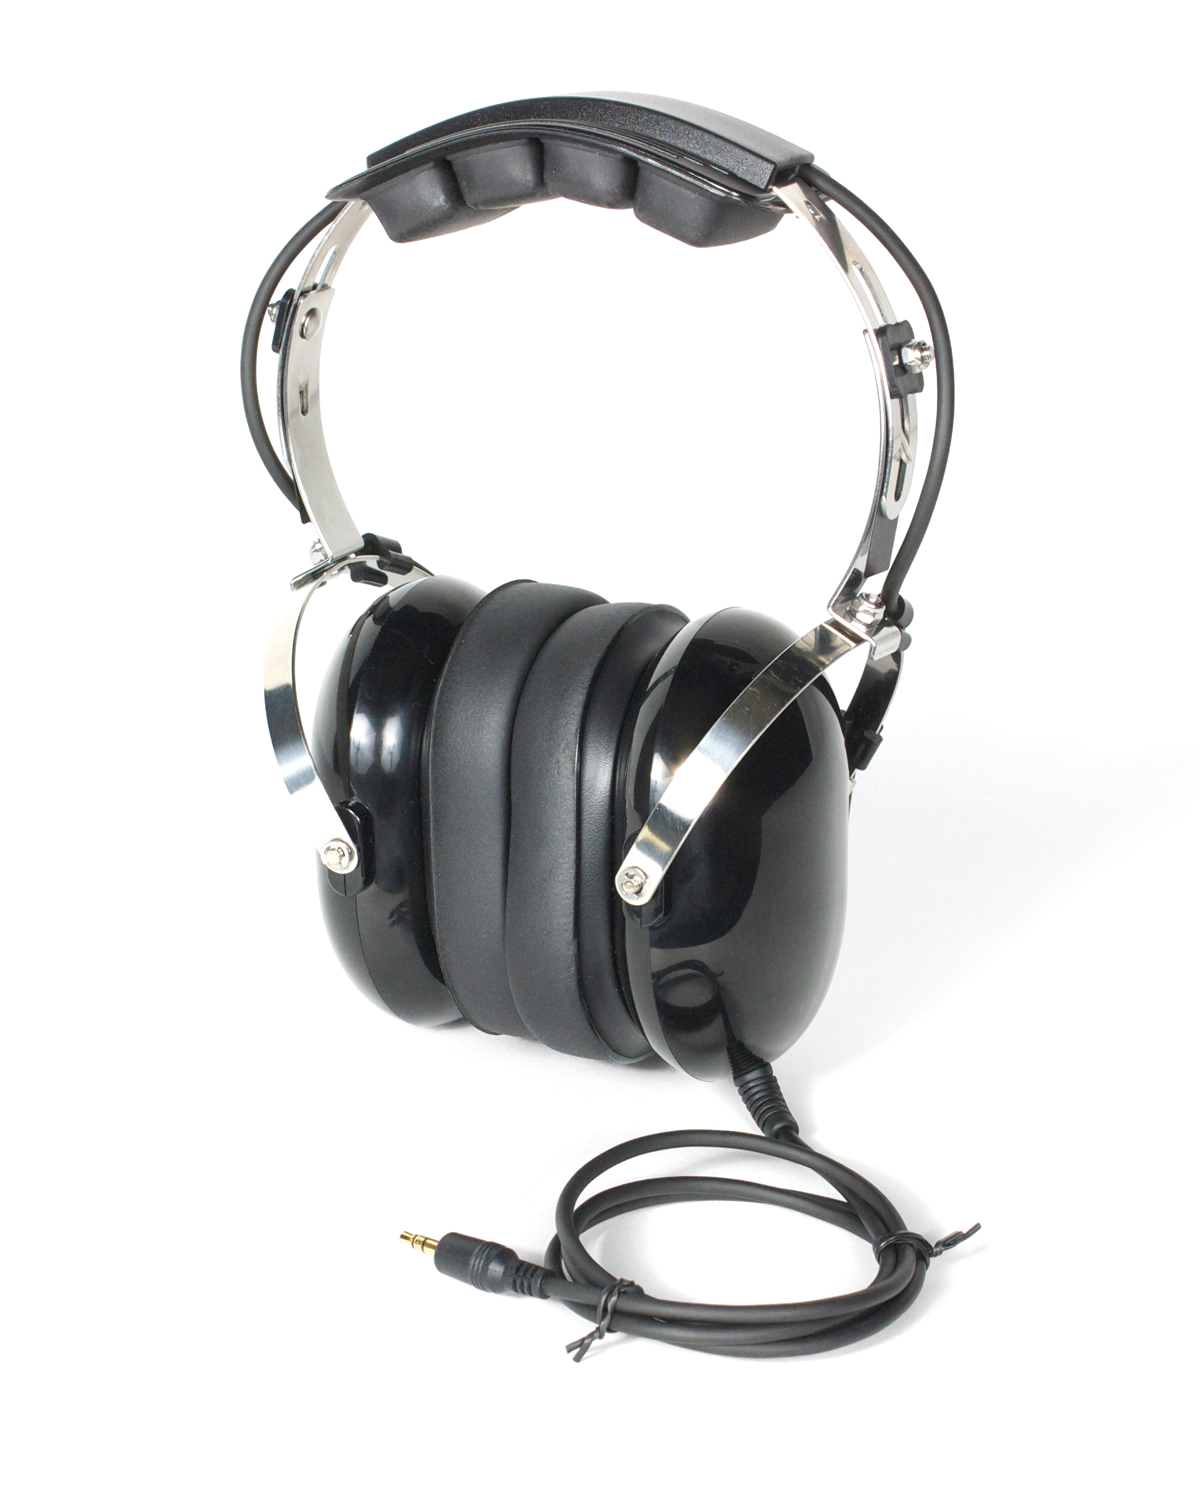 W-HED 040 Hearing protector headphones